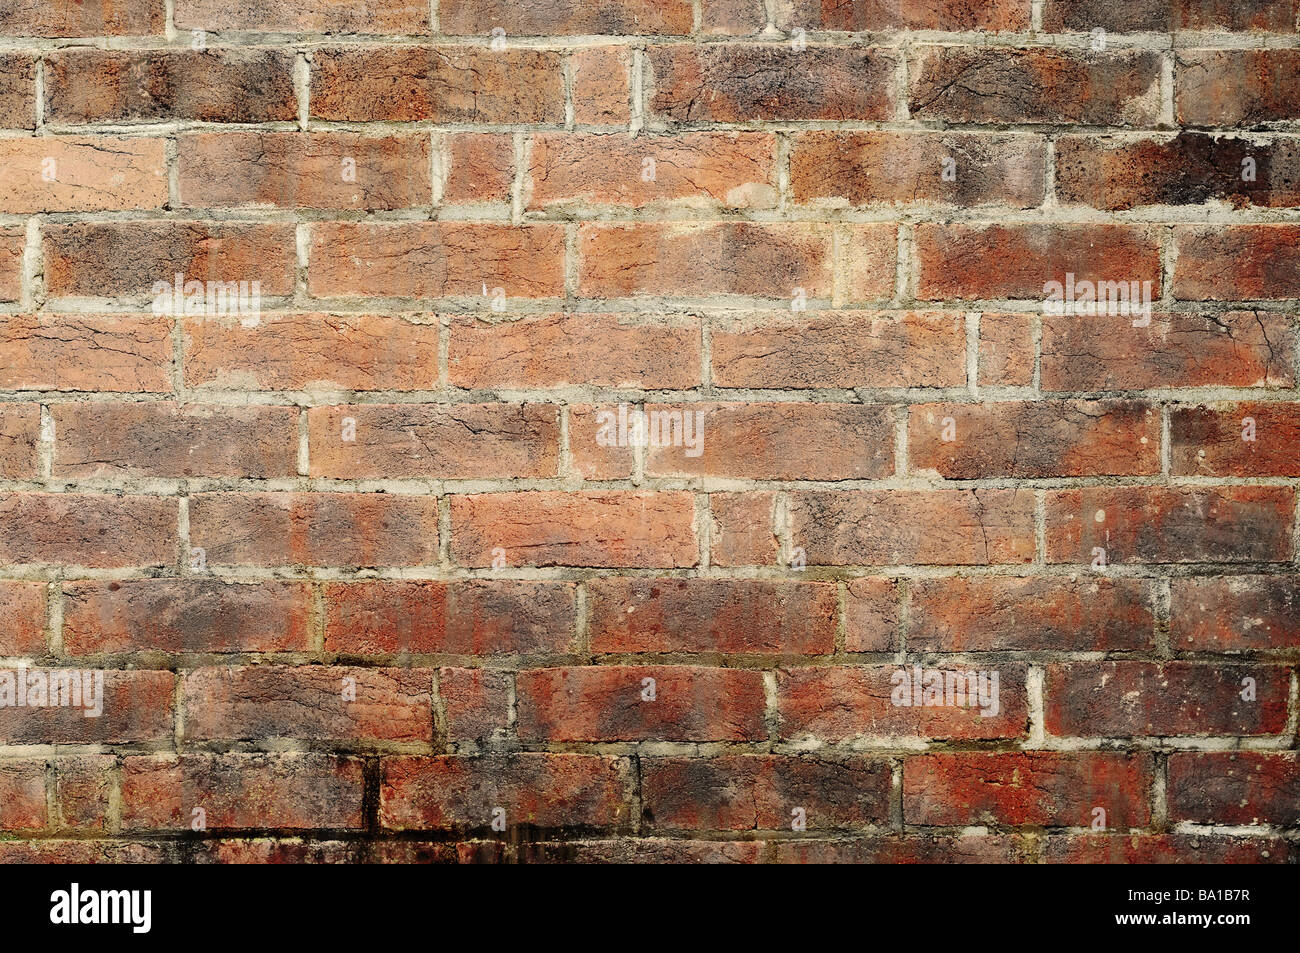 great image of an old and grungy brick wall - Stock Image